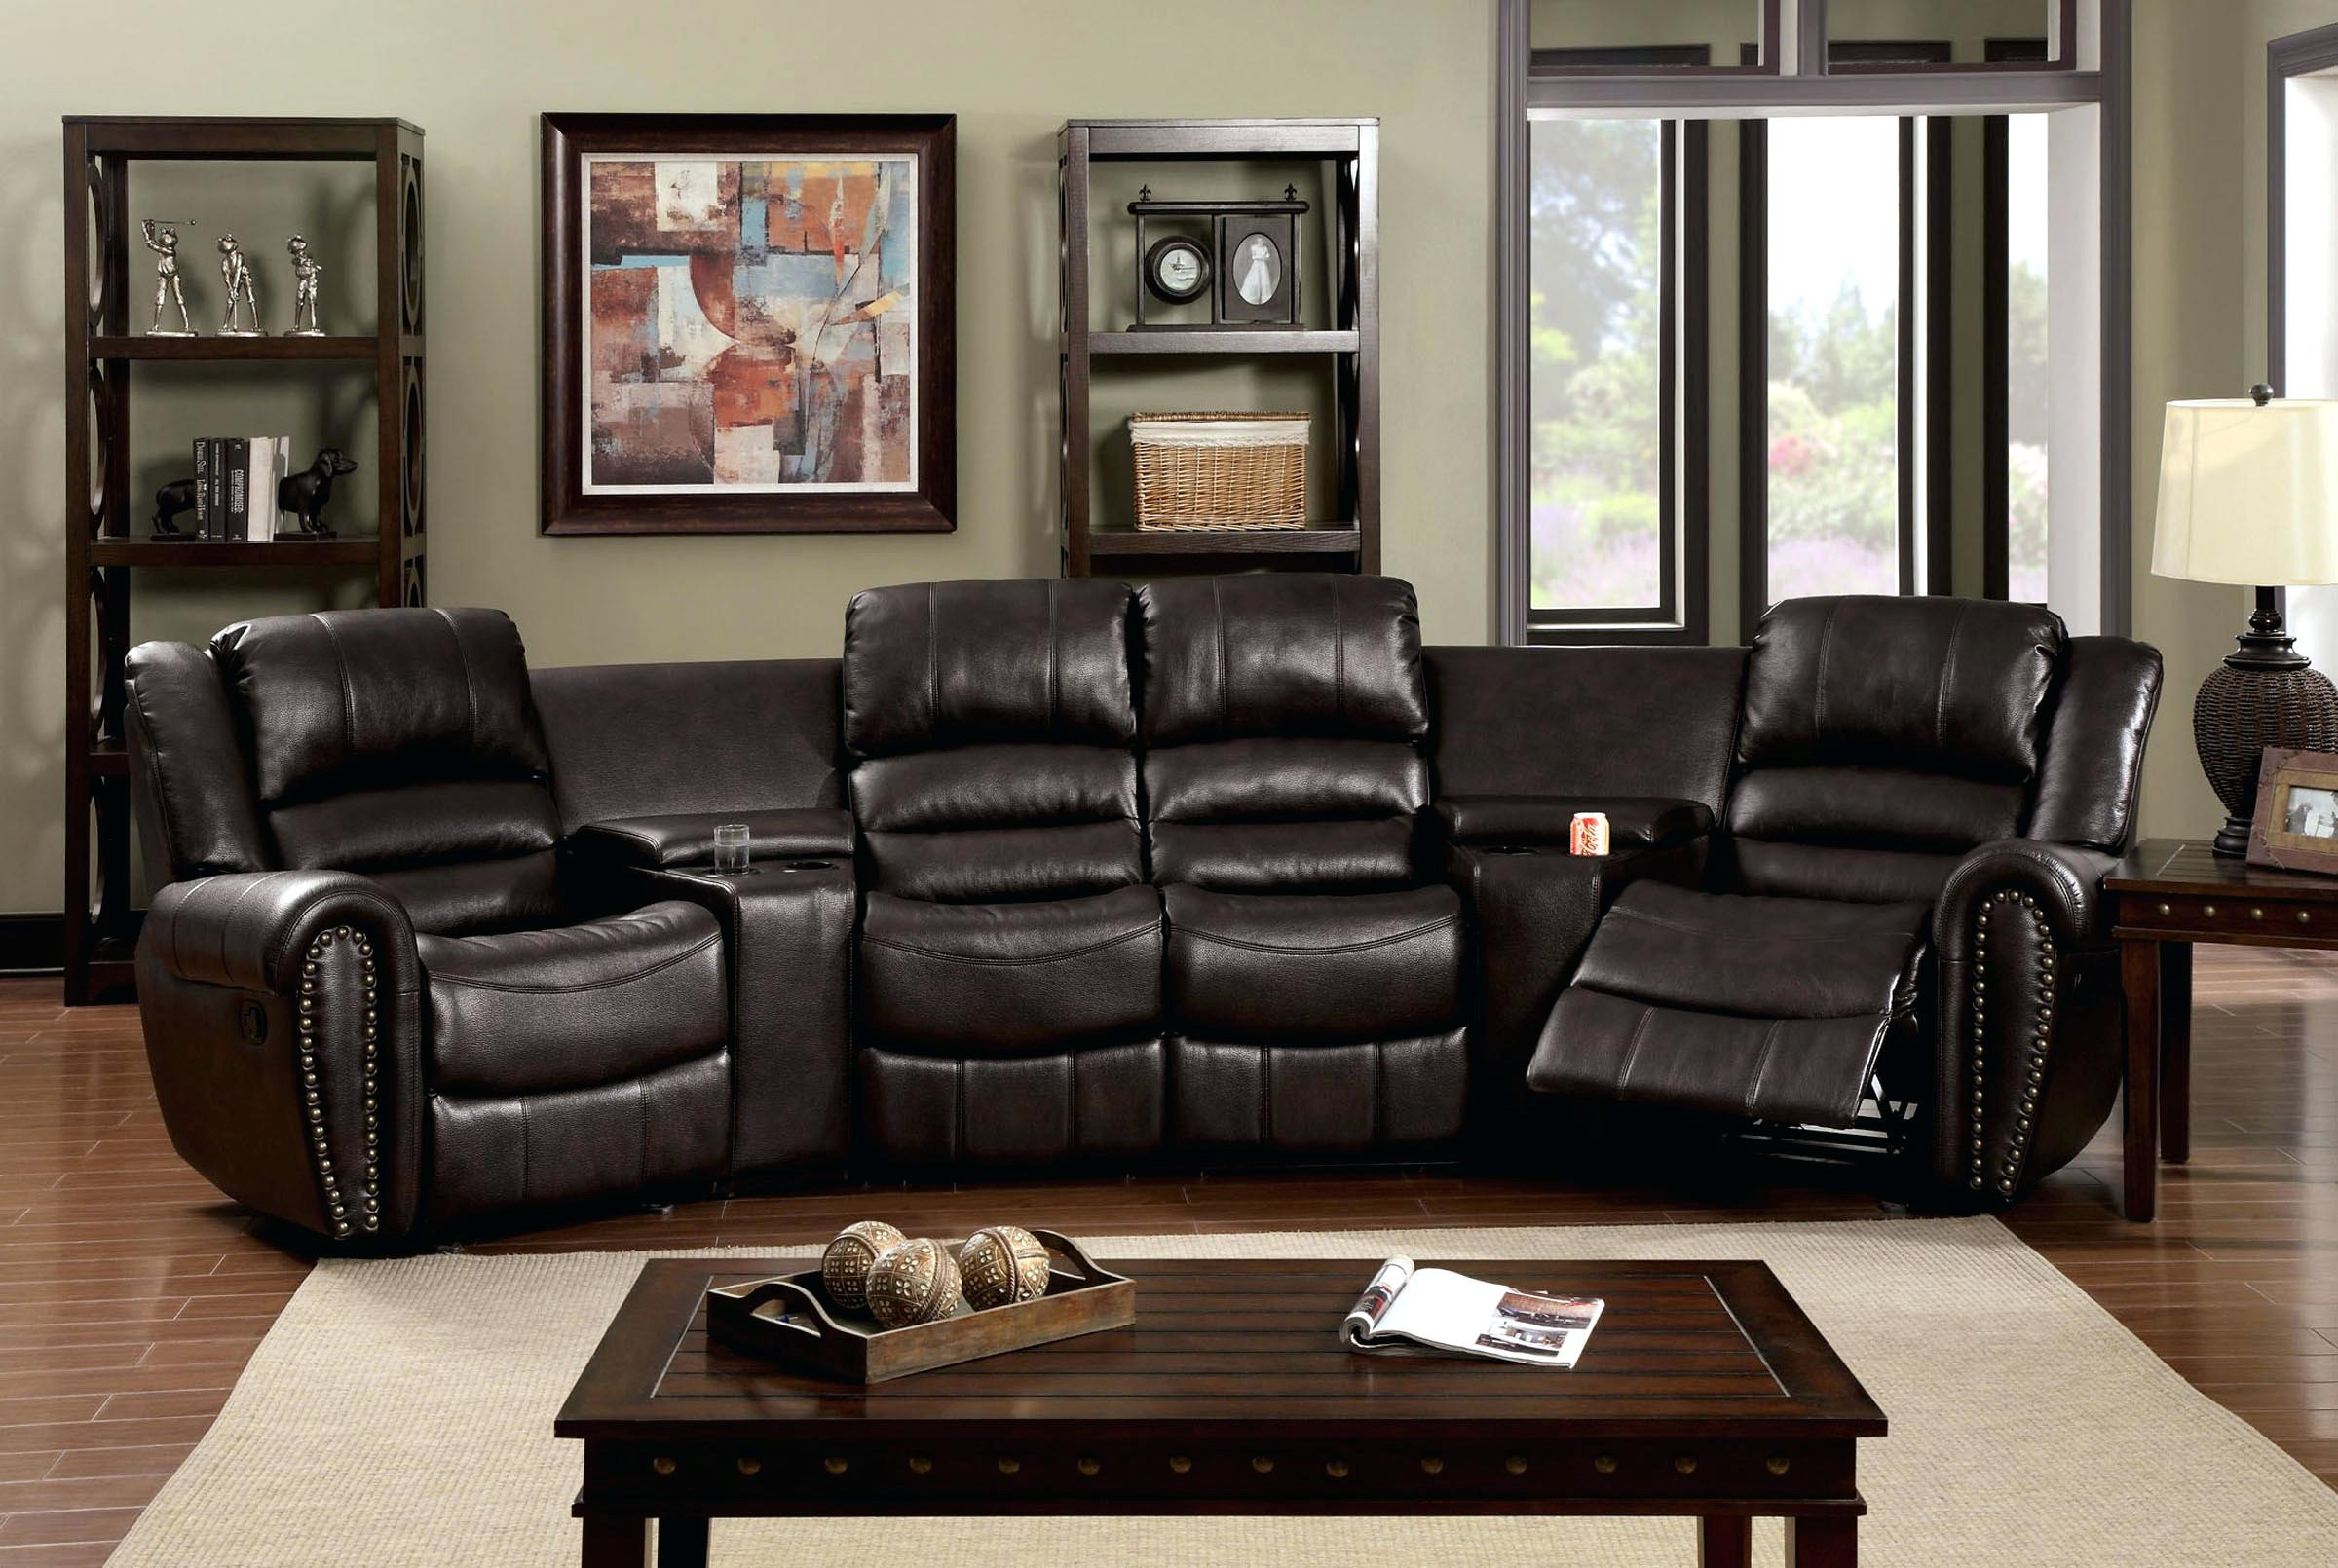 Home Theatre Style Sectional Sofa With Pull Out Bed Archives Rh Payton Construction Com